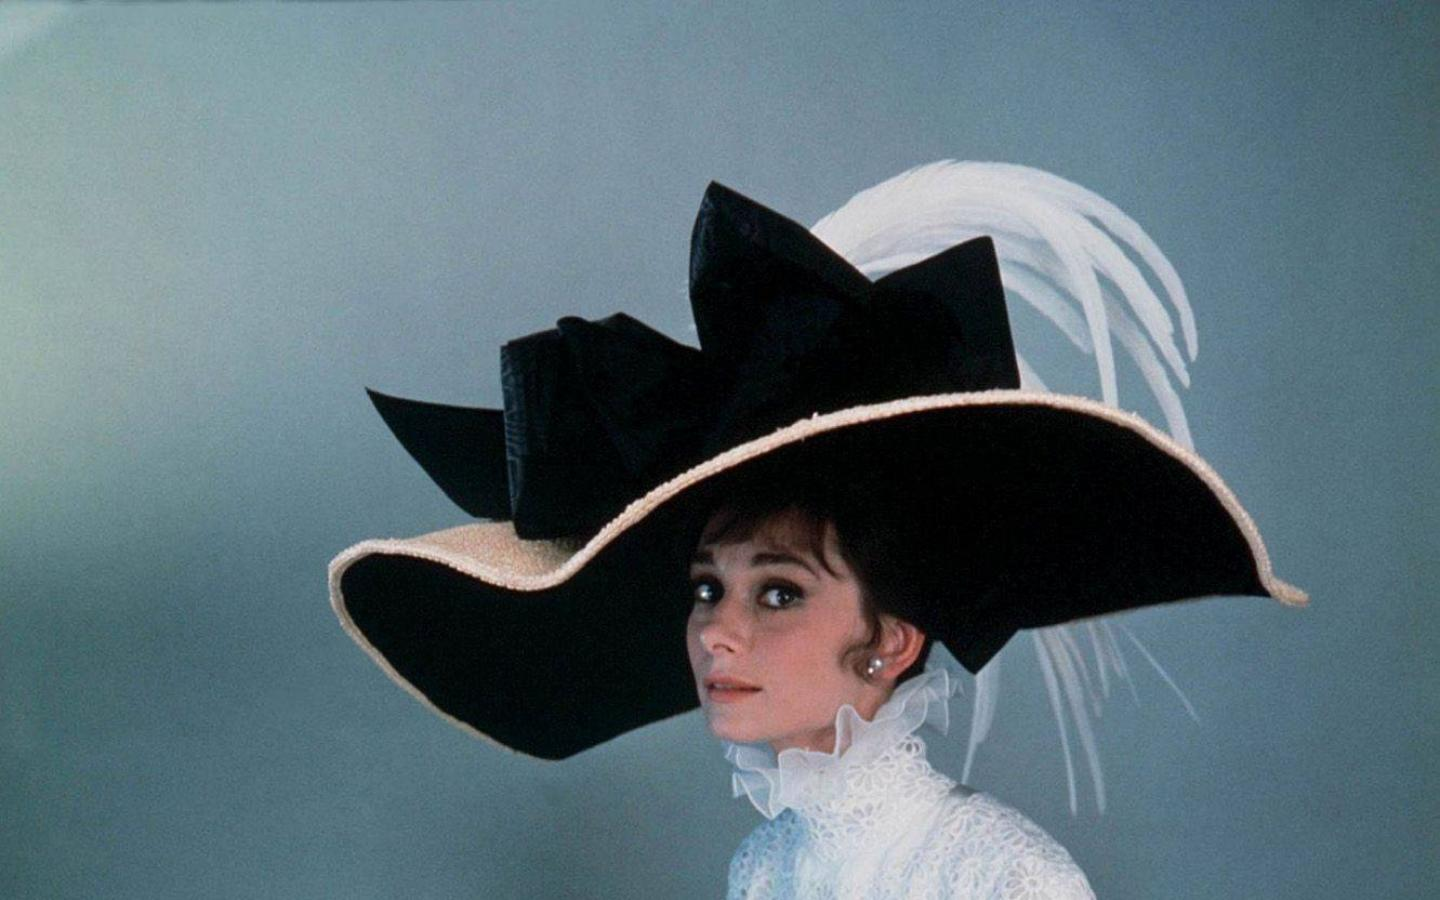 Audrey hepburn 095 wallpaper HQ WALLPAPER   1998 1440x900